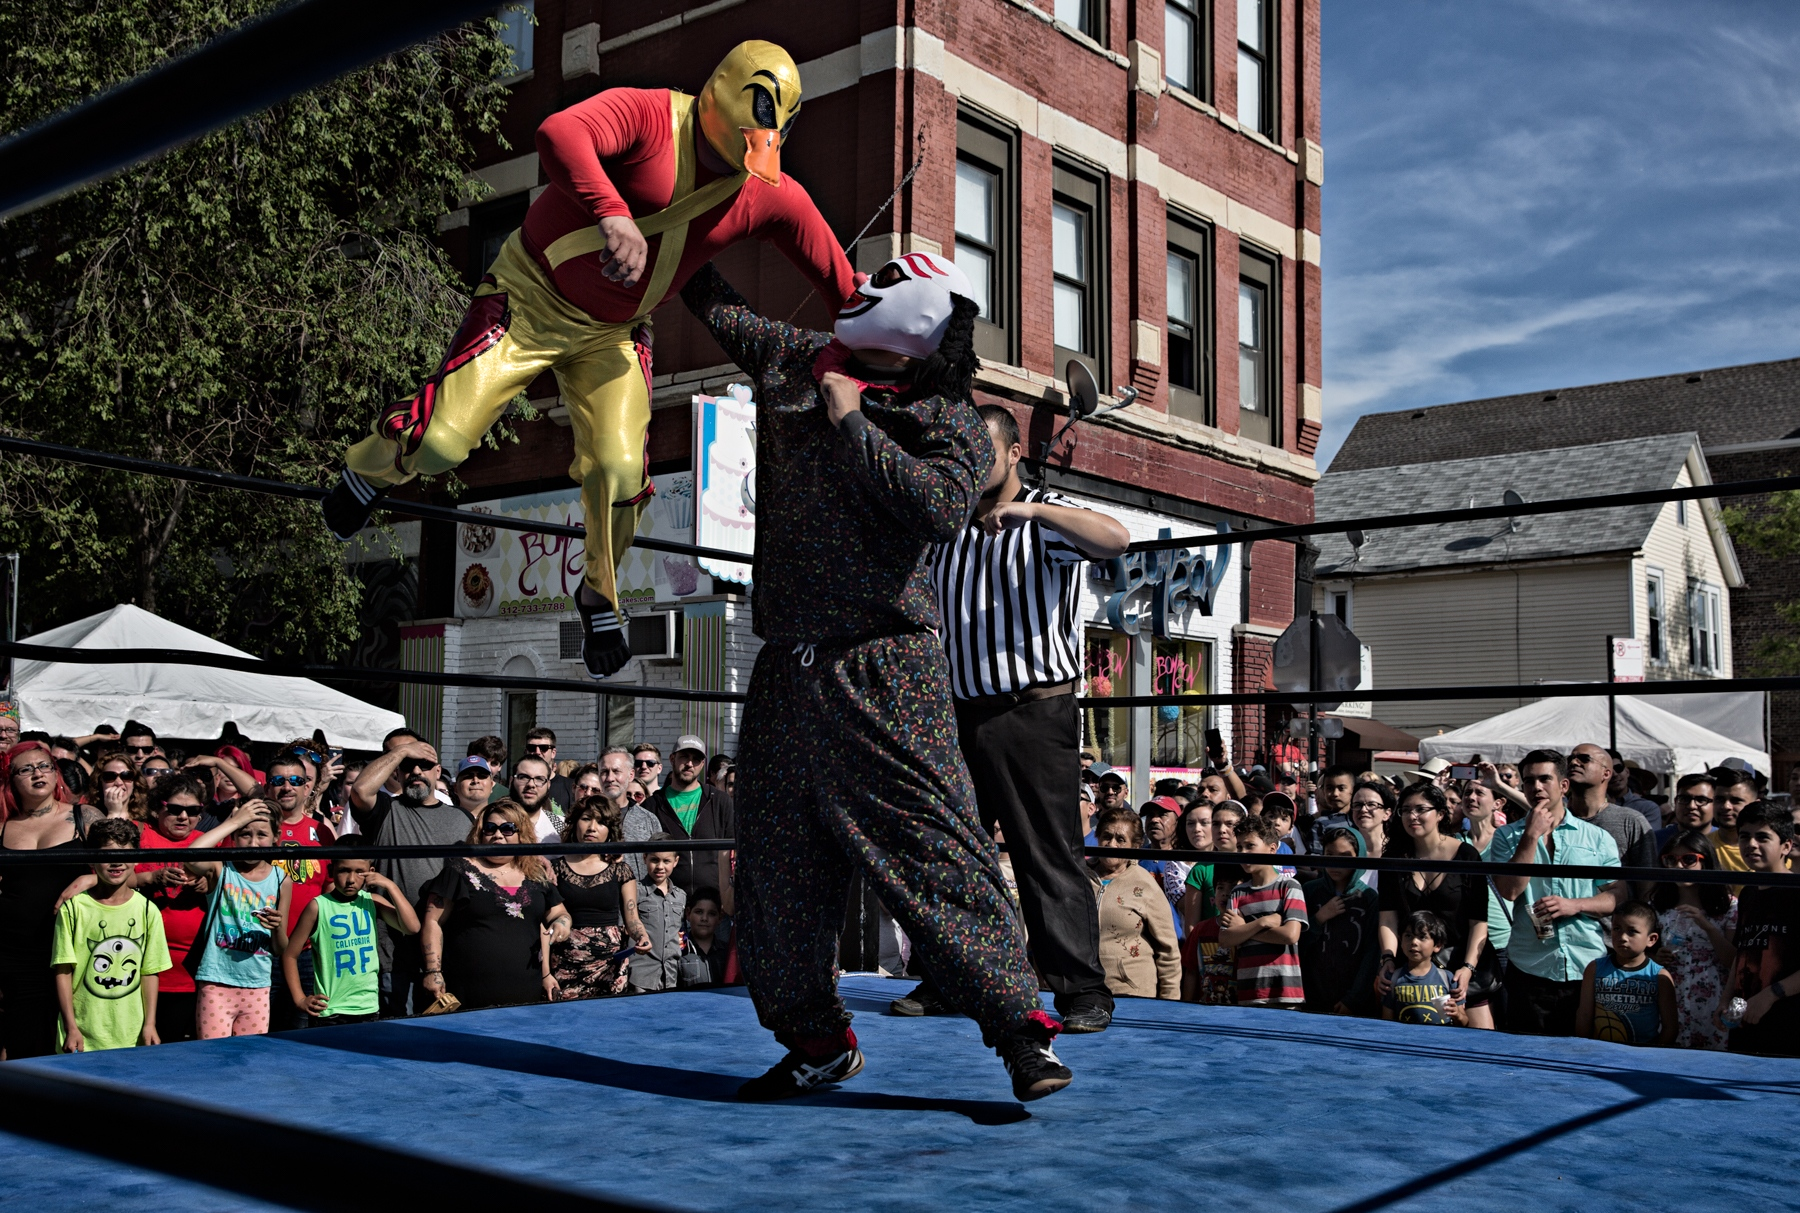 In a duck costume and only making quacking noise, Kung Fu Pato jumps from the ropes against a his opponent, a member of the Los Pyasos.